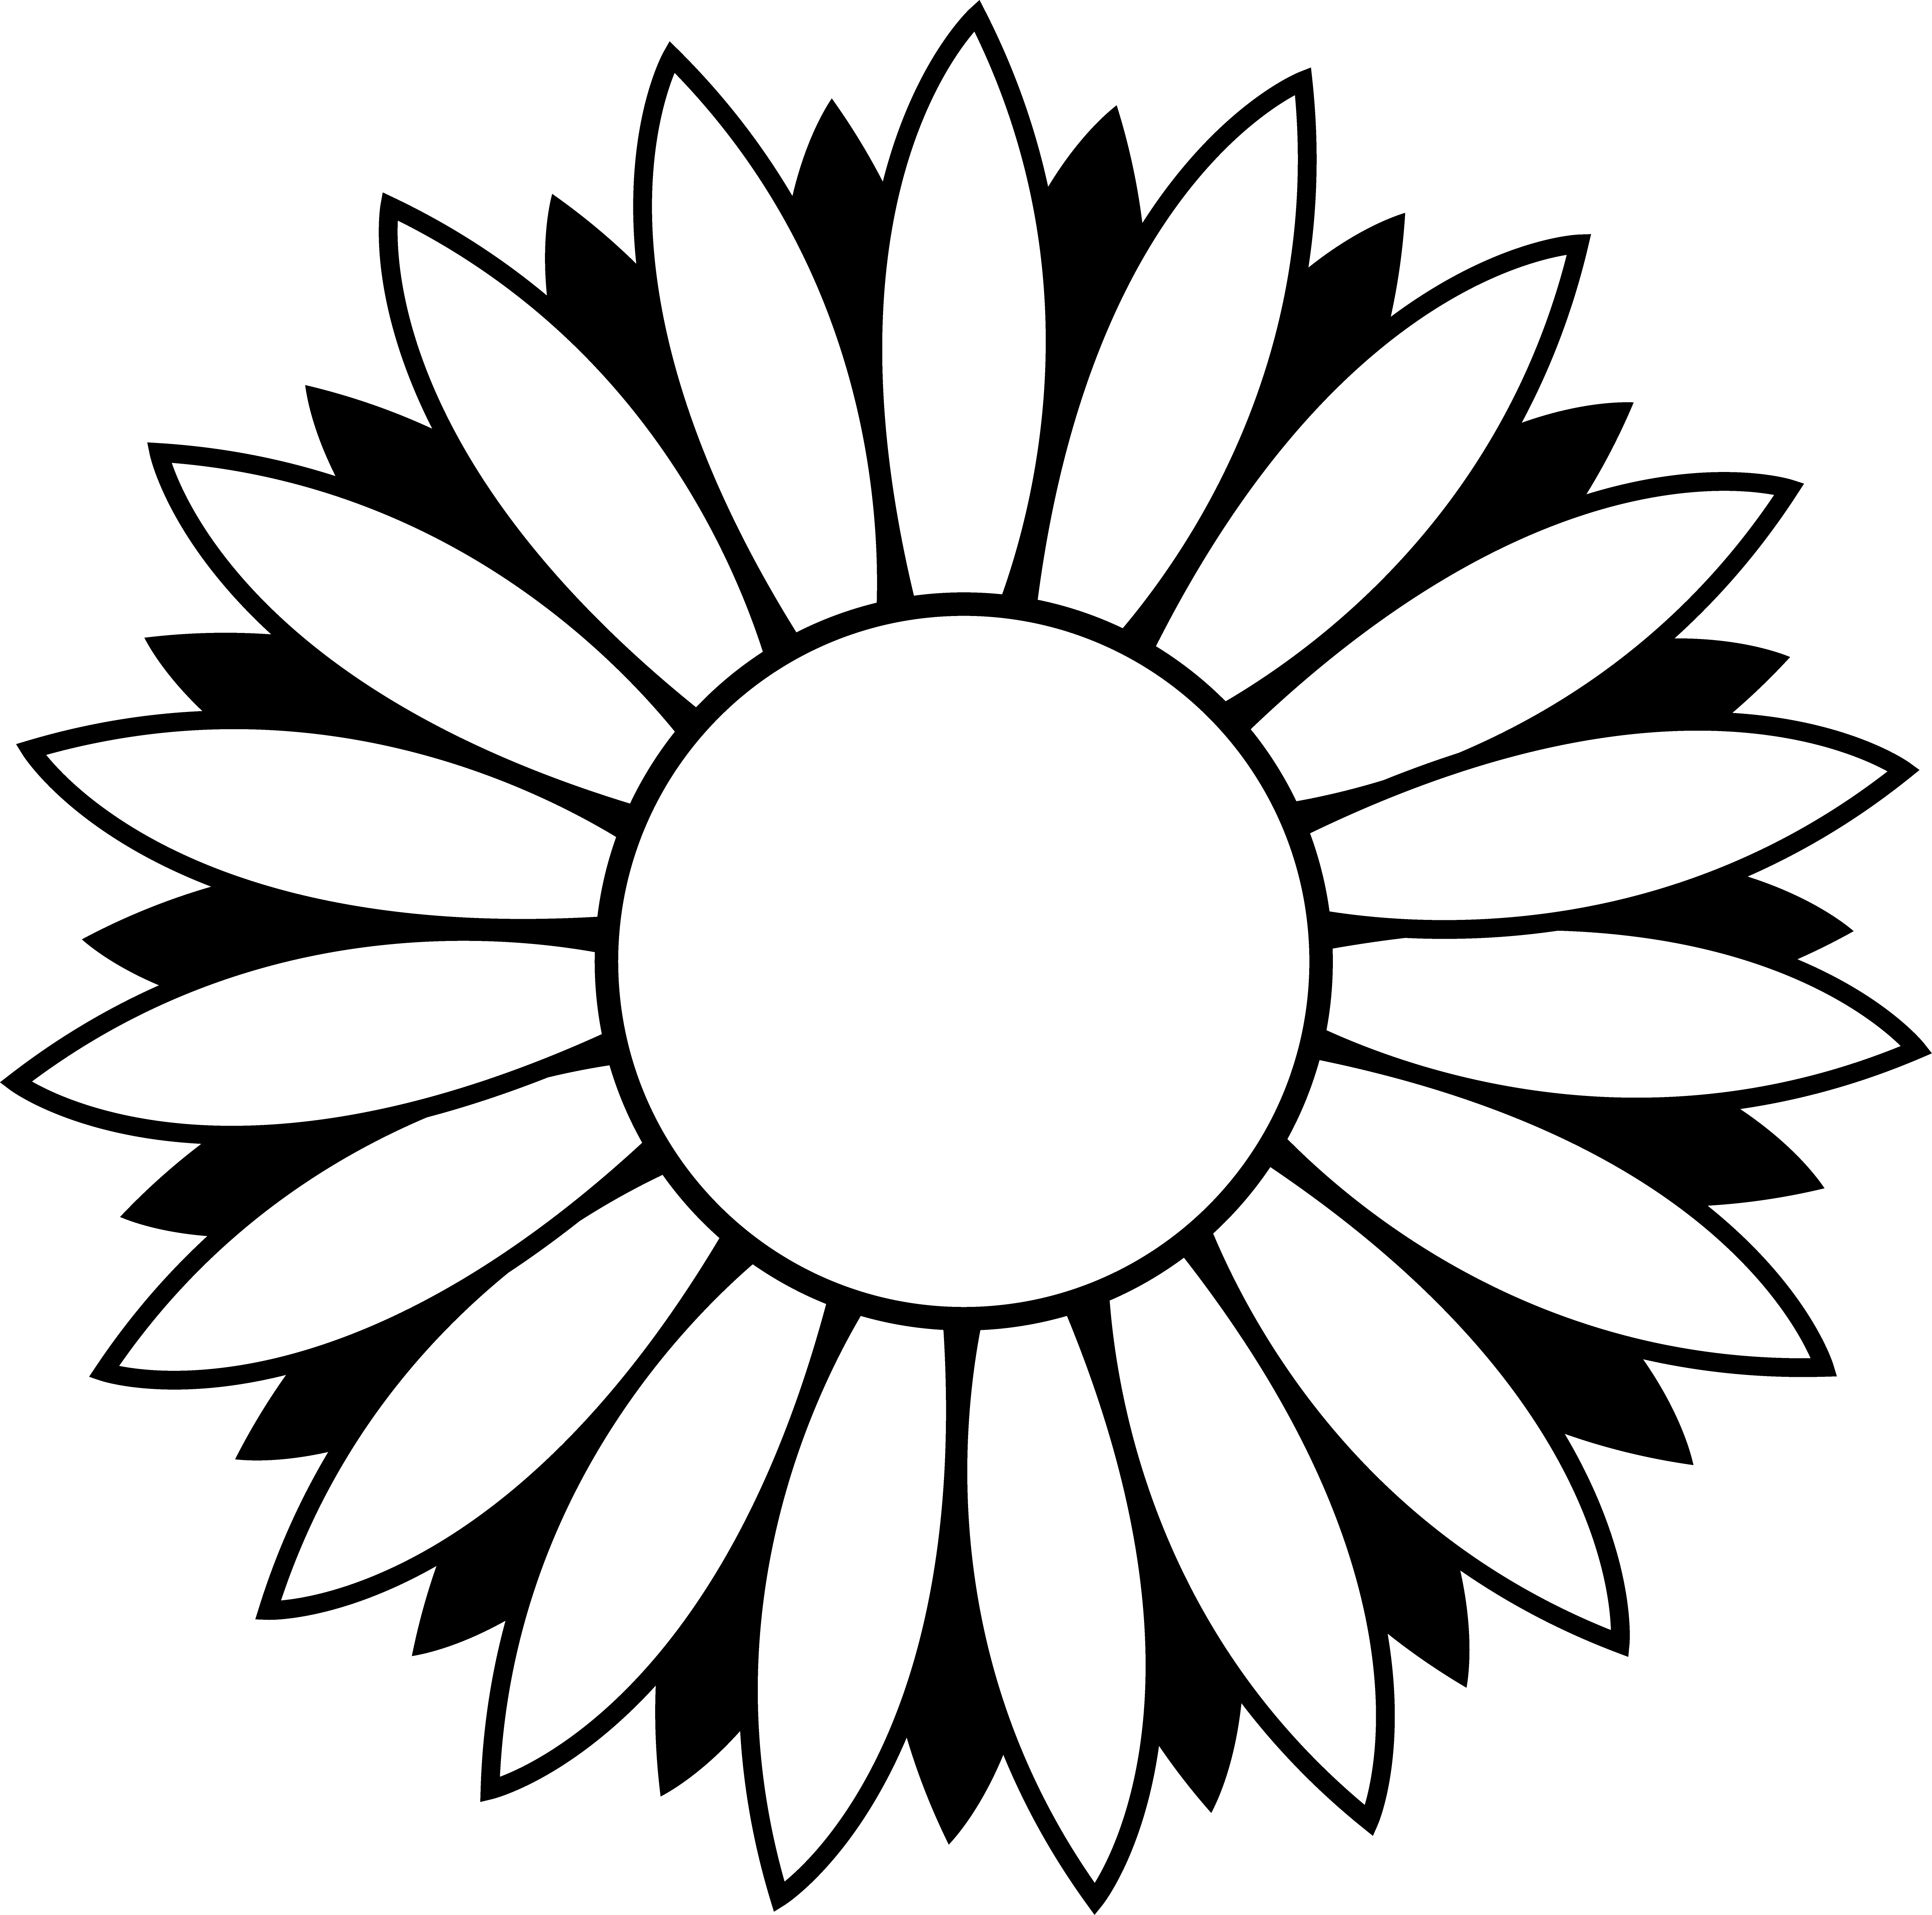 Line clipart vector And Sunflower clipart Black White